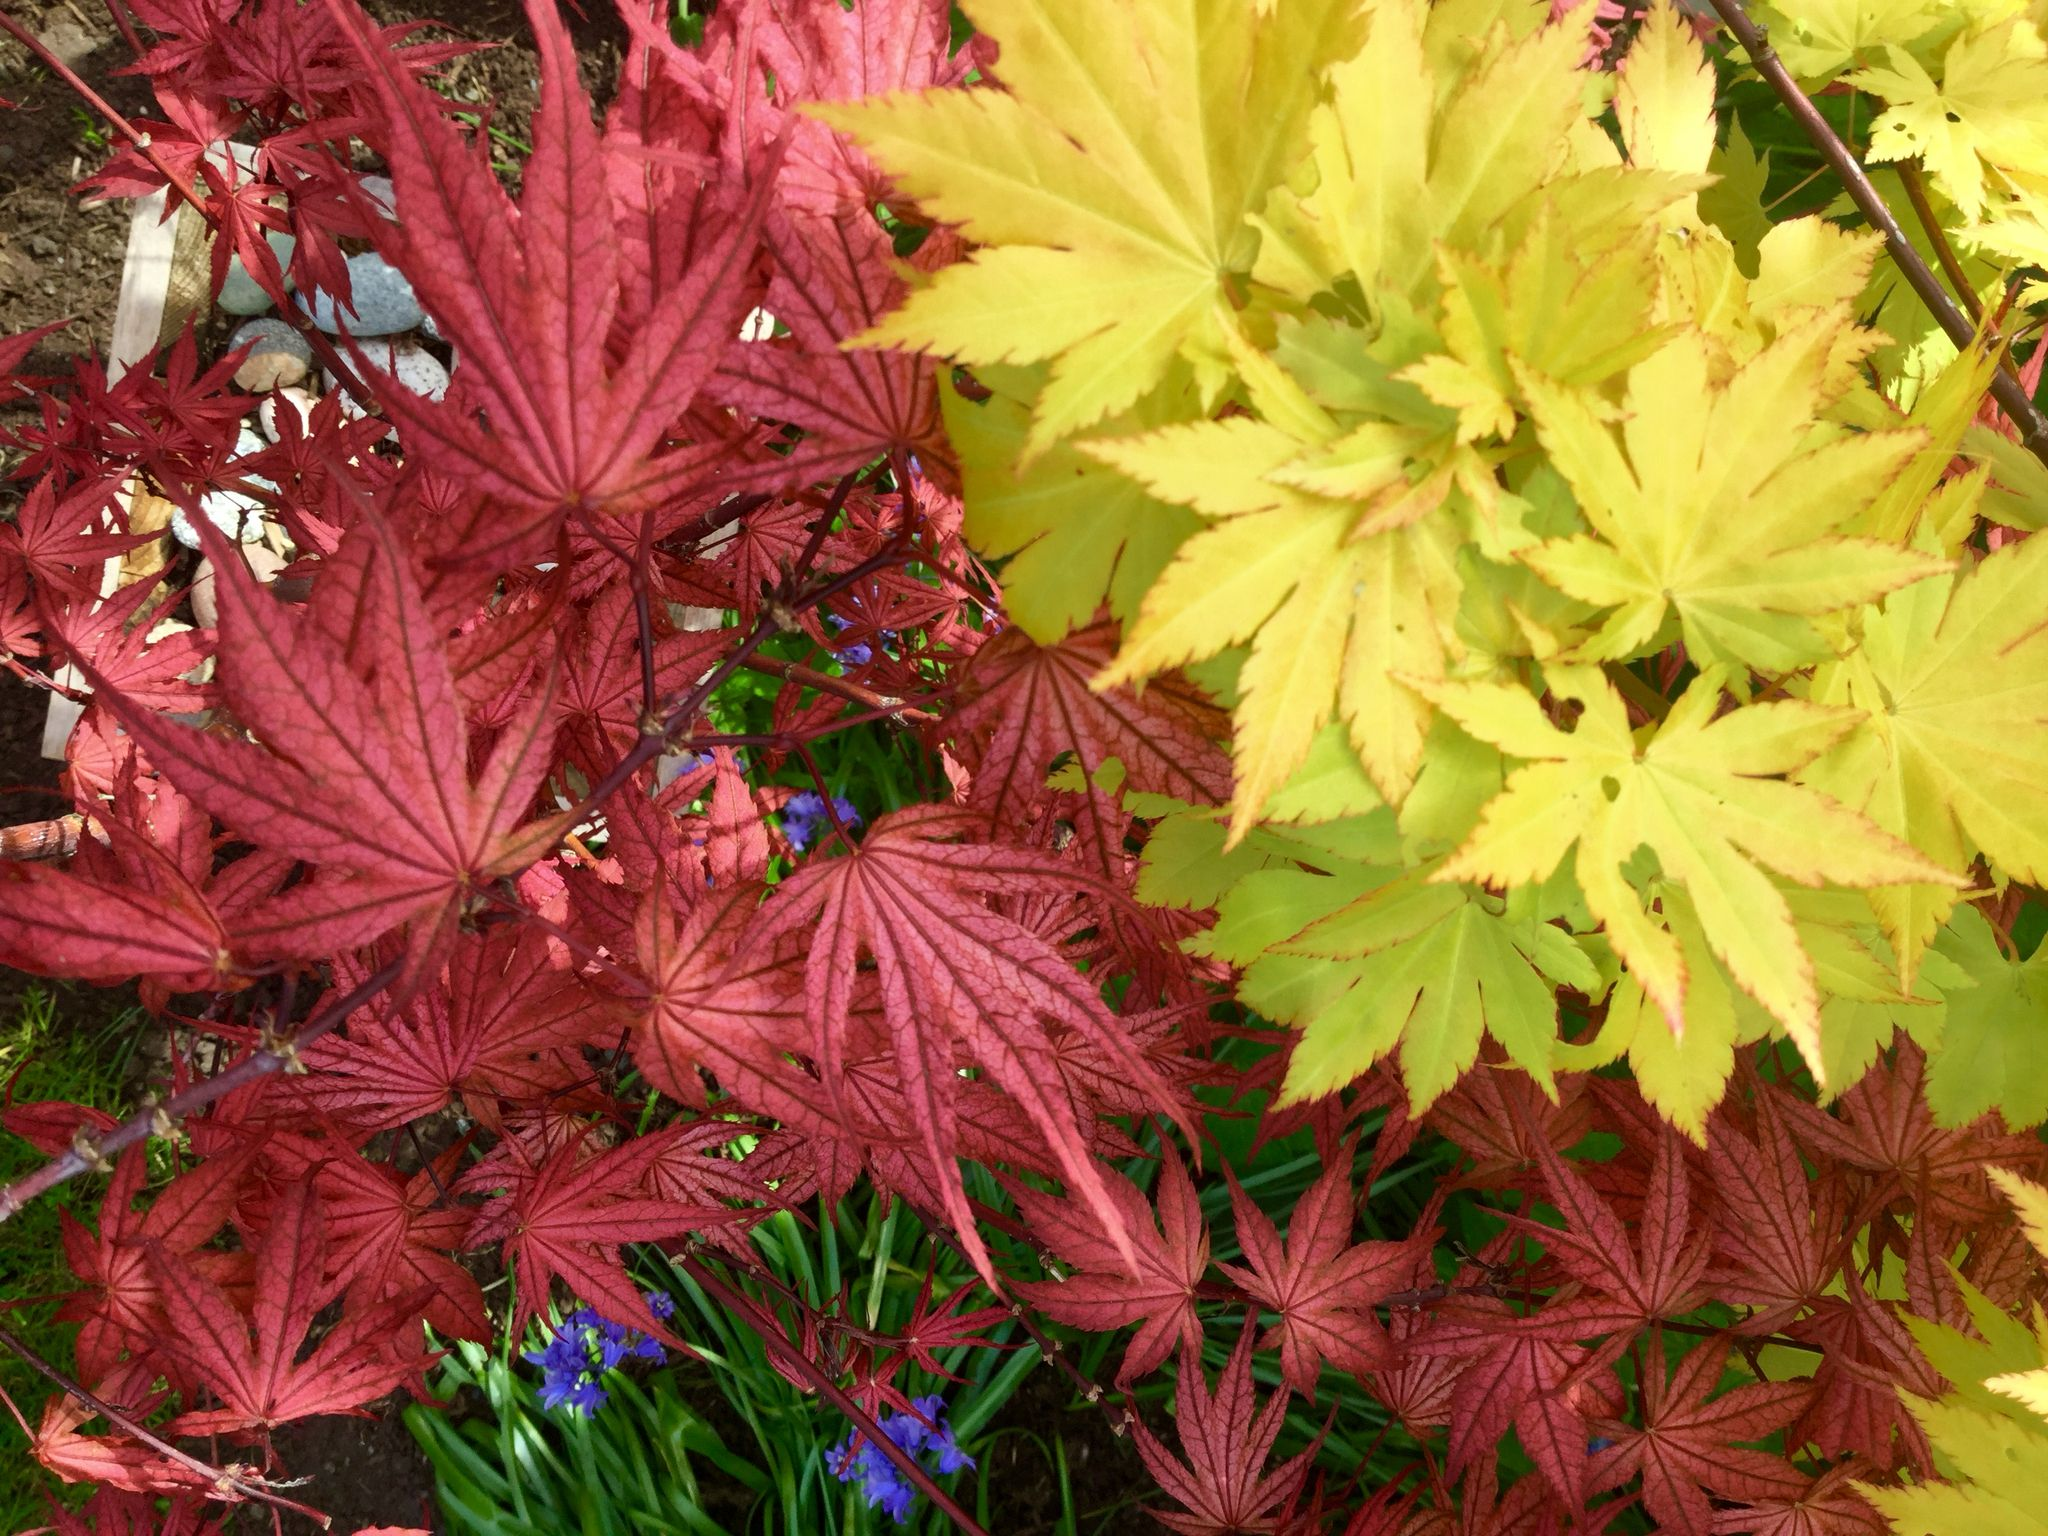 Acer Palmatum Olsens Frosted Strawberry And Acer Shirasawanum